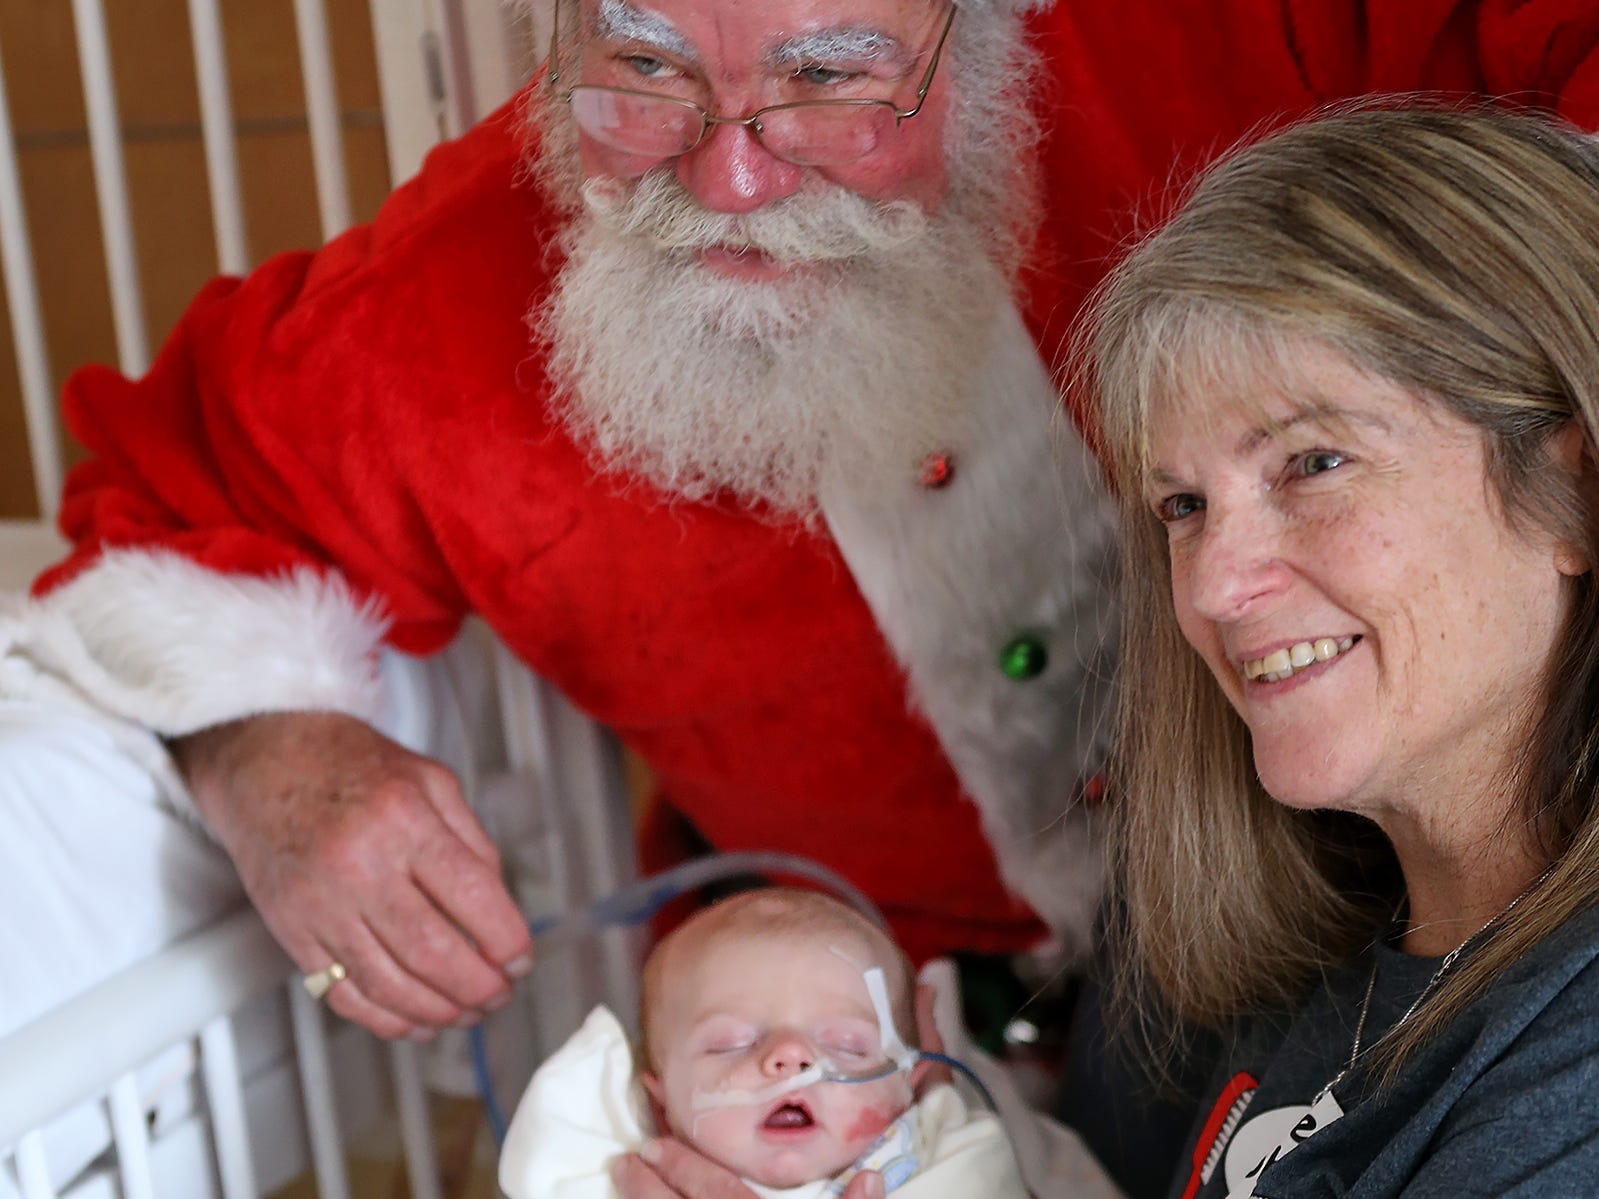 Santa, aka Bill Armstrong, poses for a photo with Patty Fultz and her grandson Jasper Butler, while the Clauses visit with kids at Riley Children's Health, Thursday, Dec. 13, 2018.